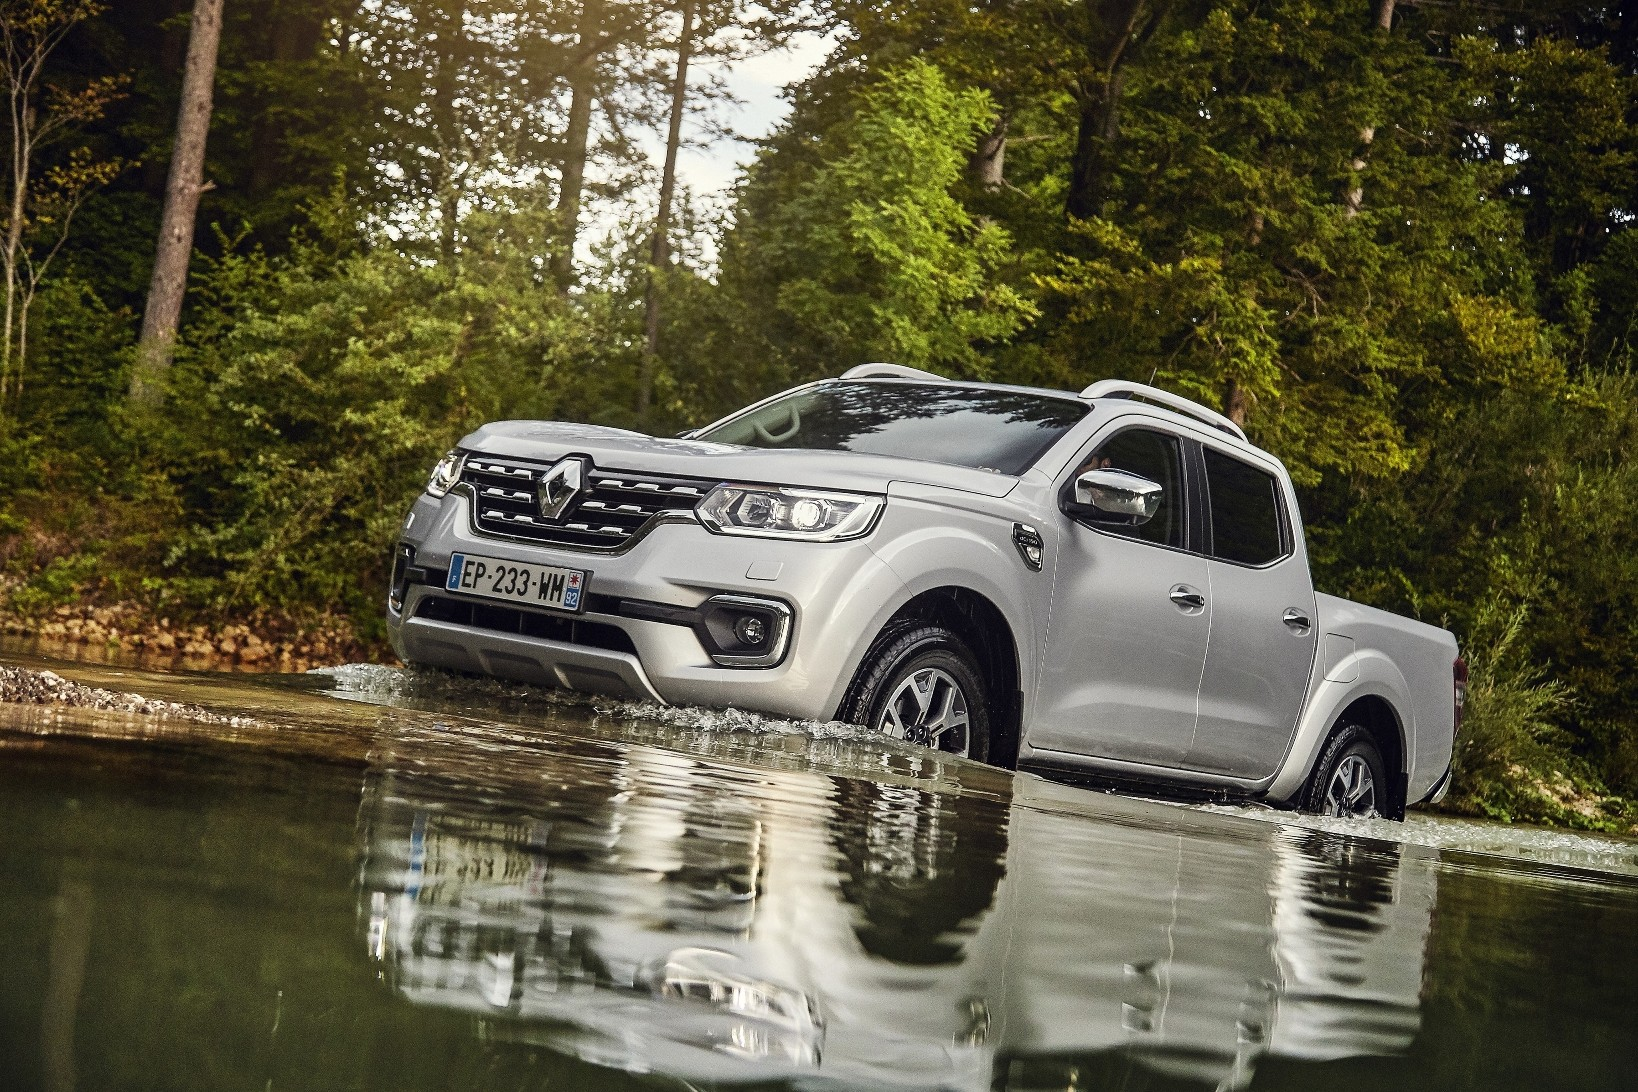 2018 renault alaskan. simple 2018 2018 renault alaskan european model inside renault alaskan